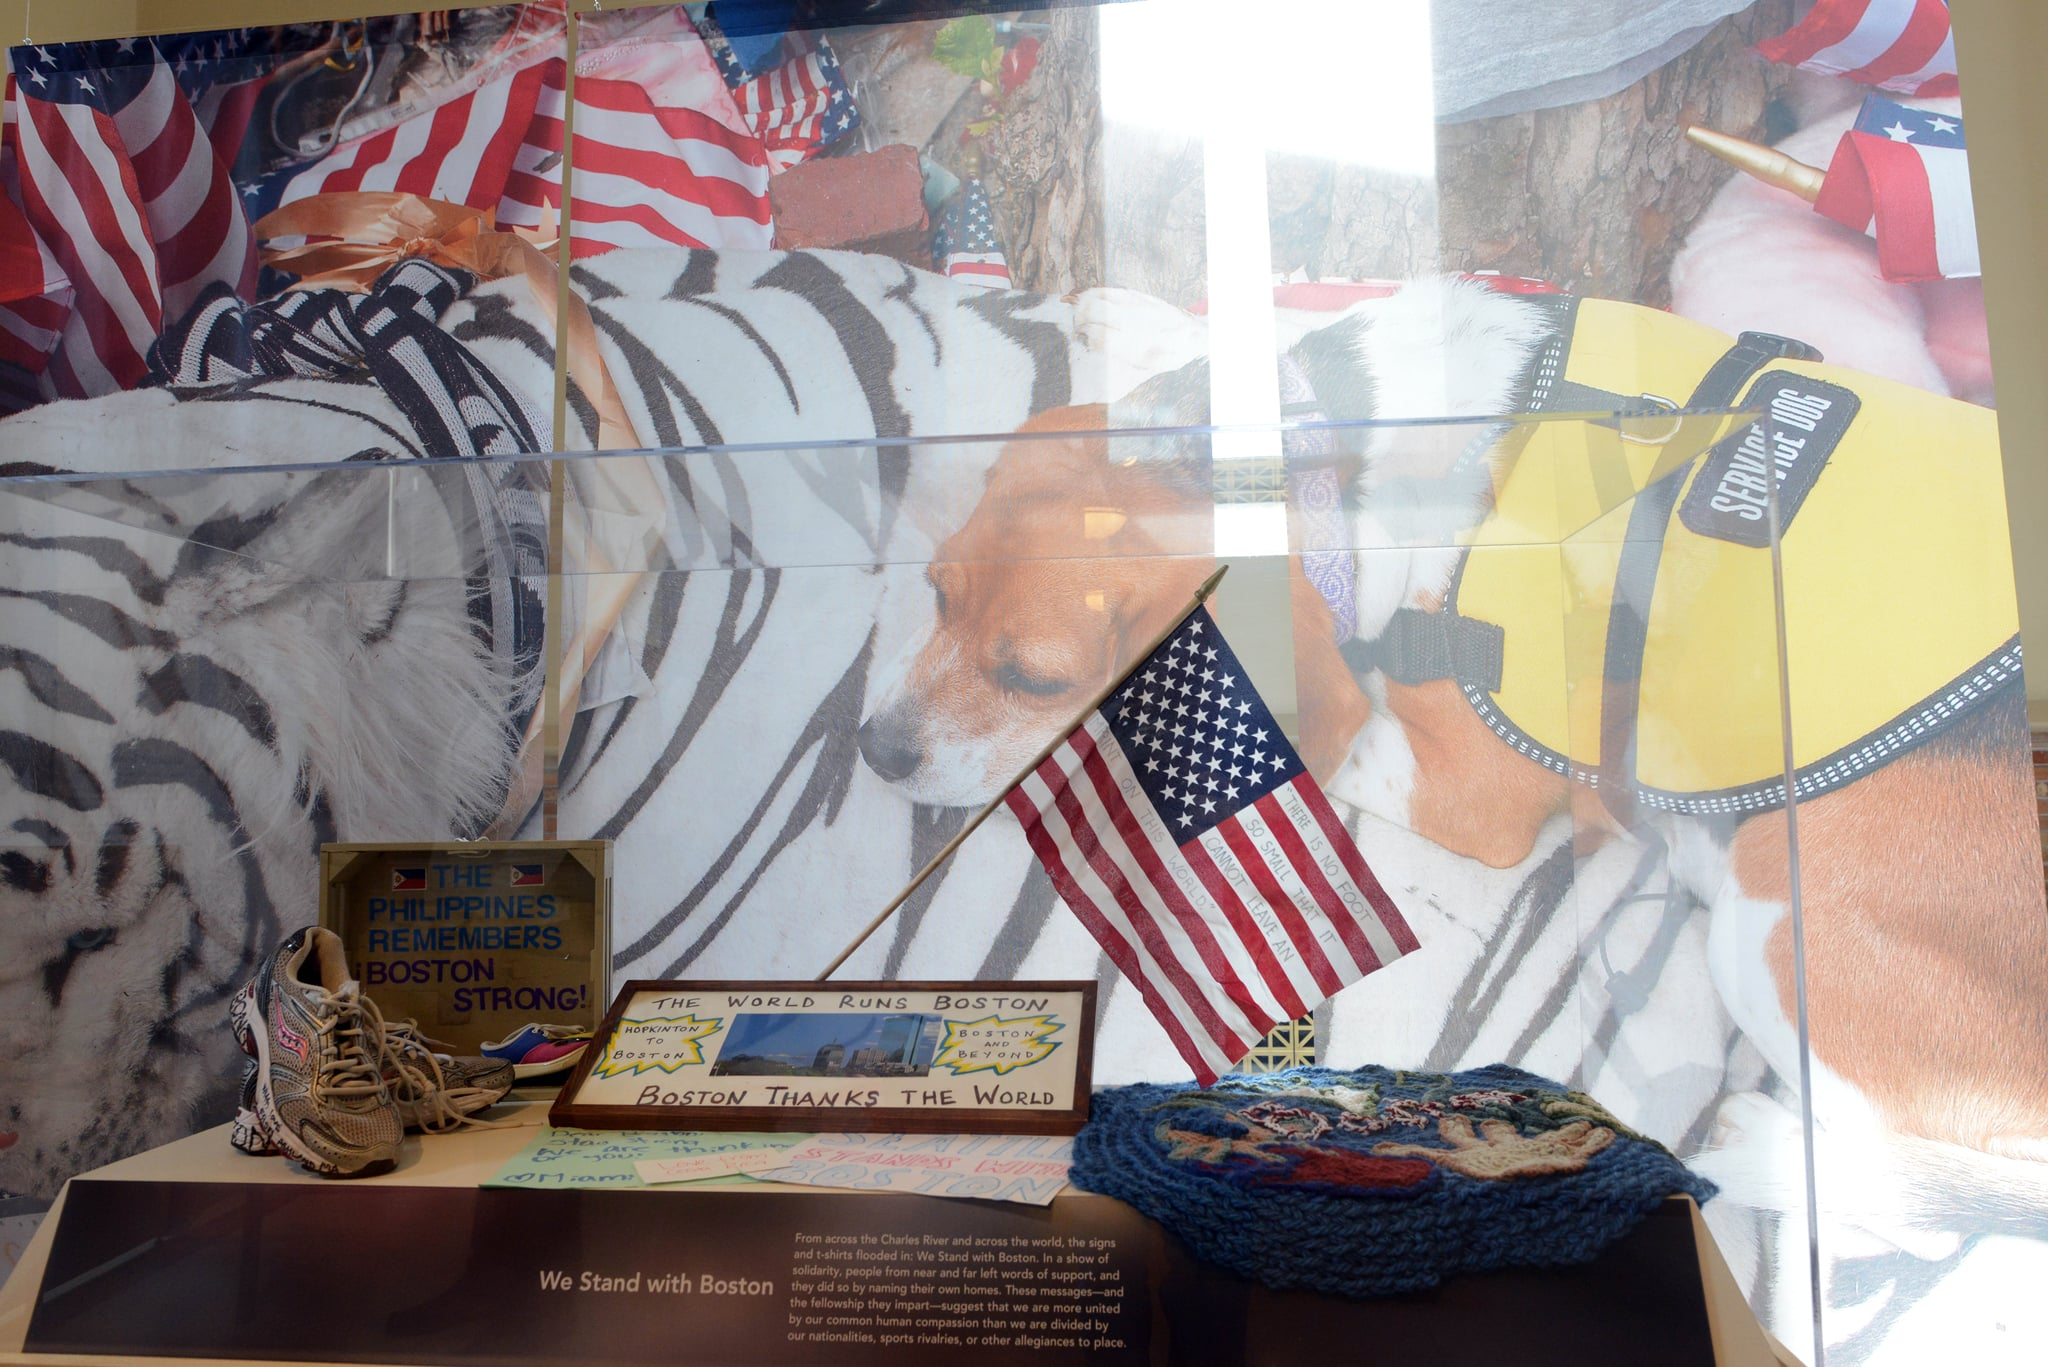 Objects from the Boston Marathon bombing are on display at the Boston Public Library's memorial exhibition.